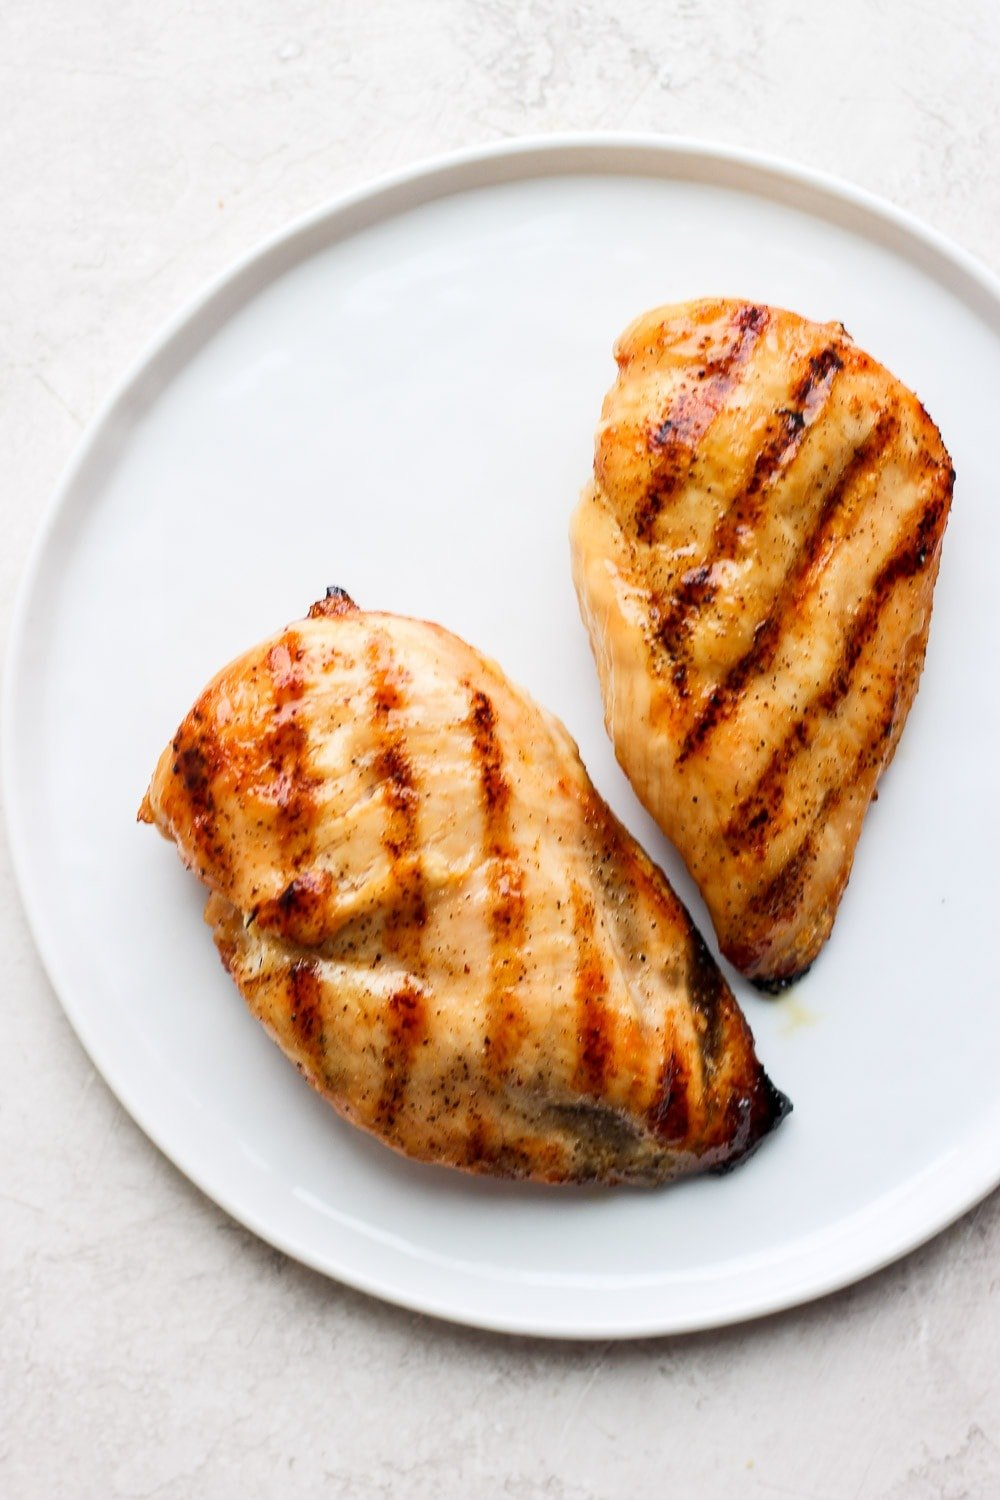 2 grilled chicken breasts on plate